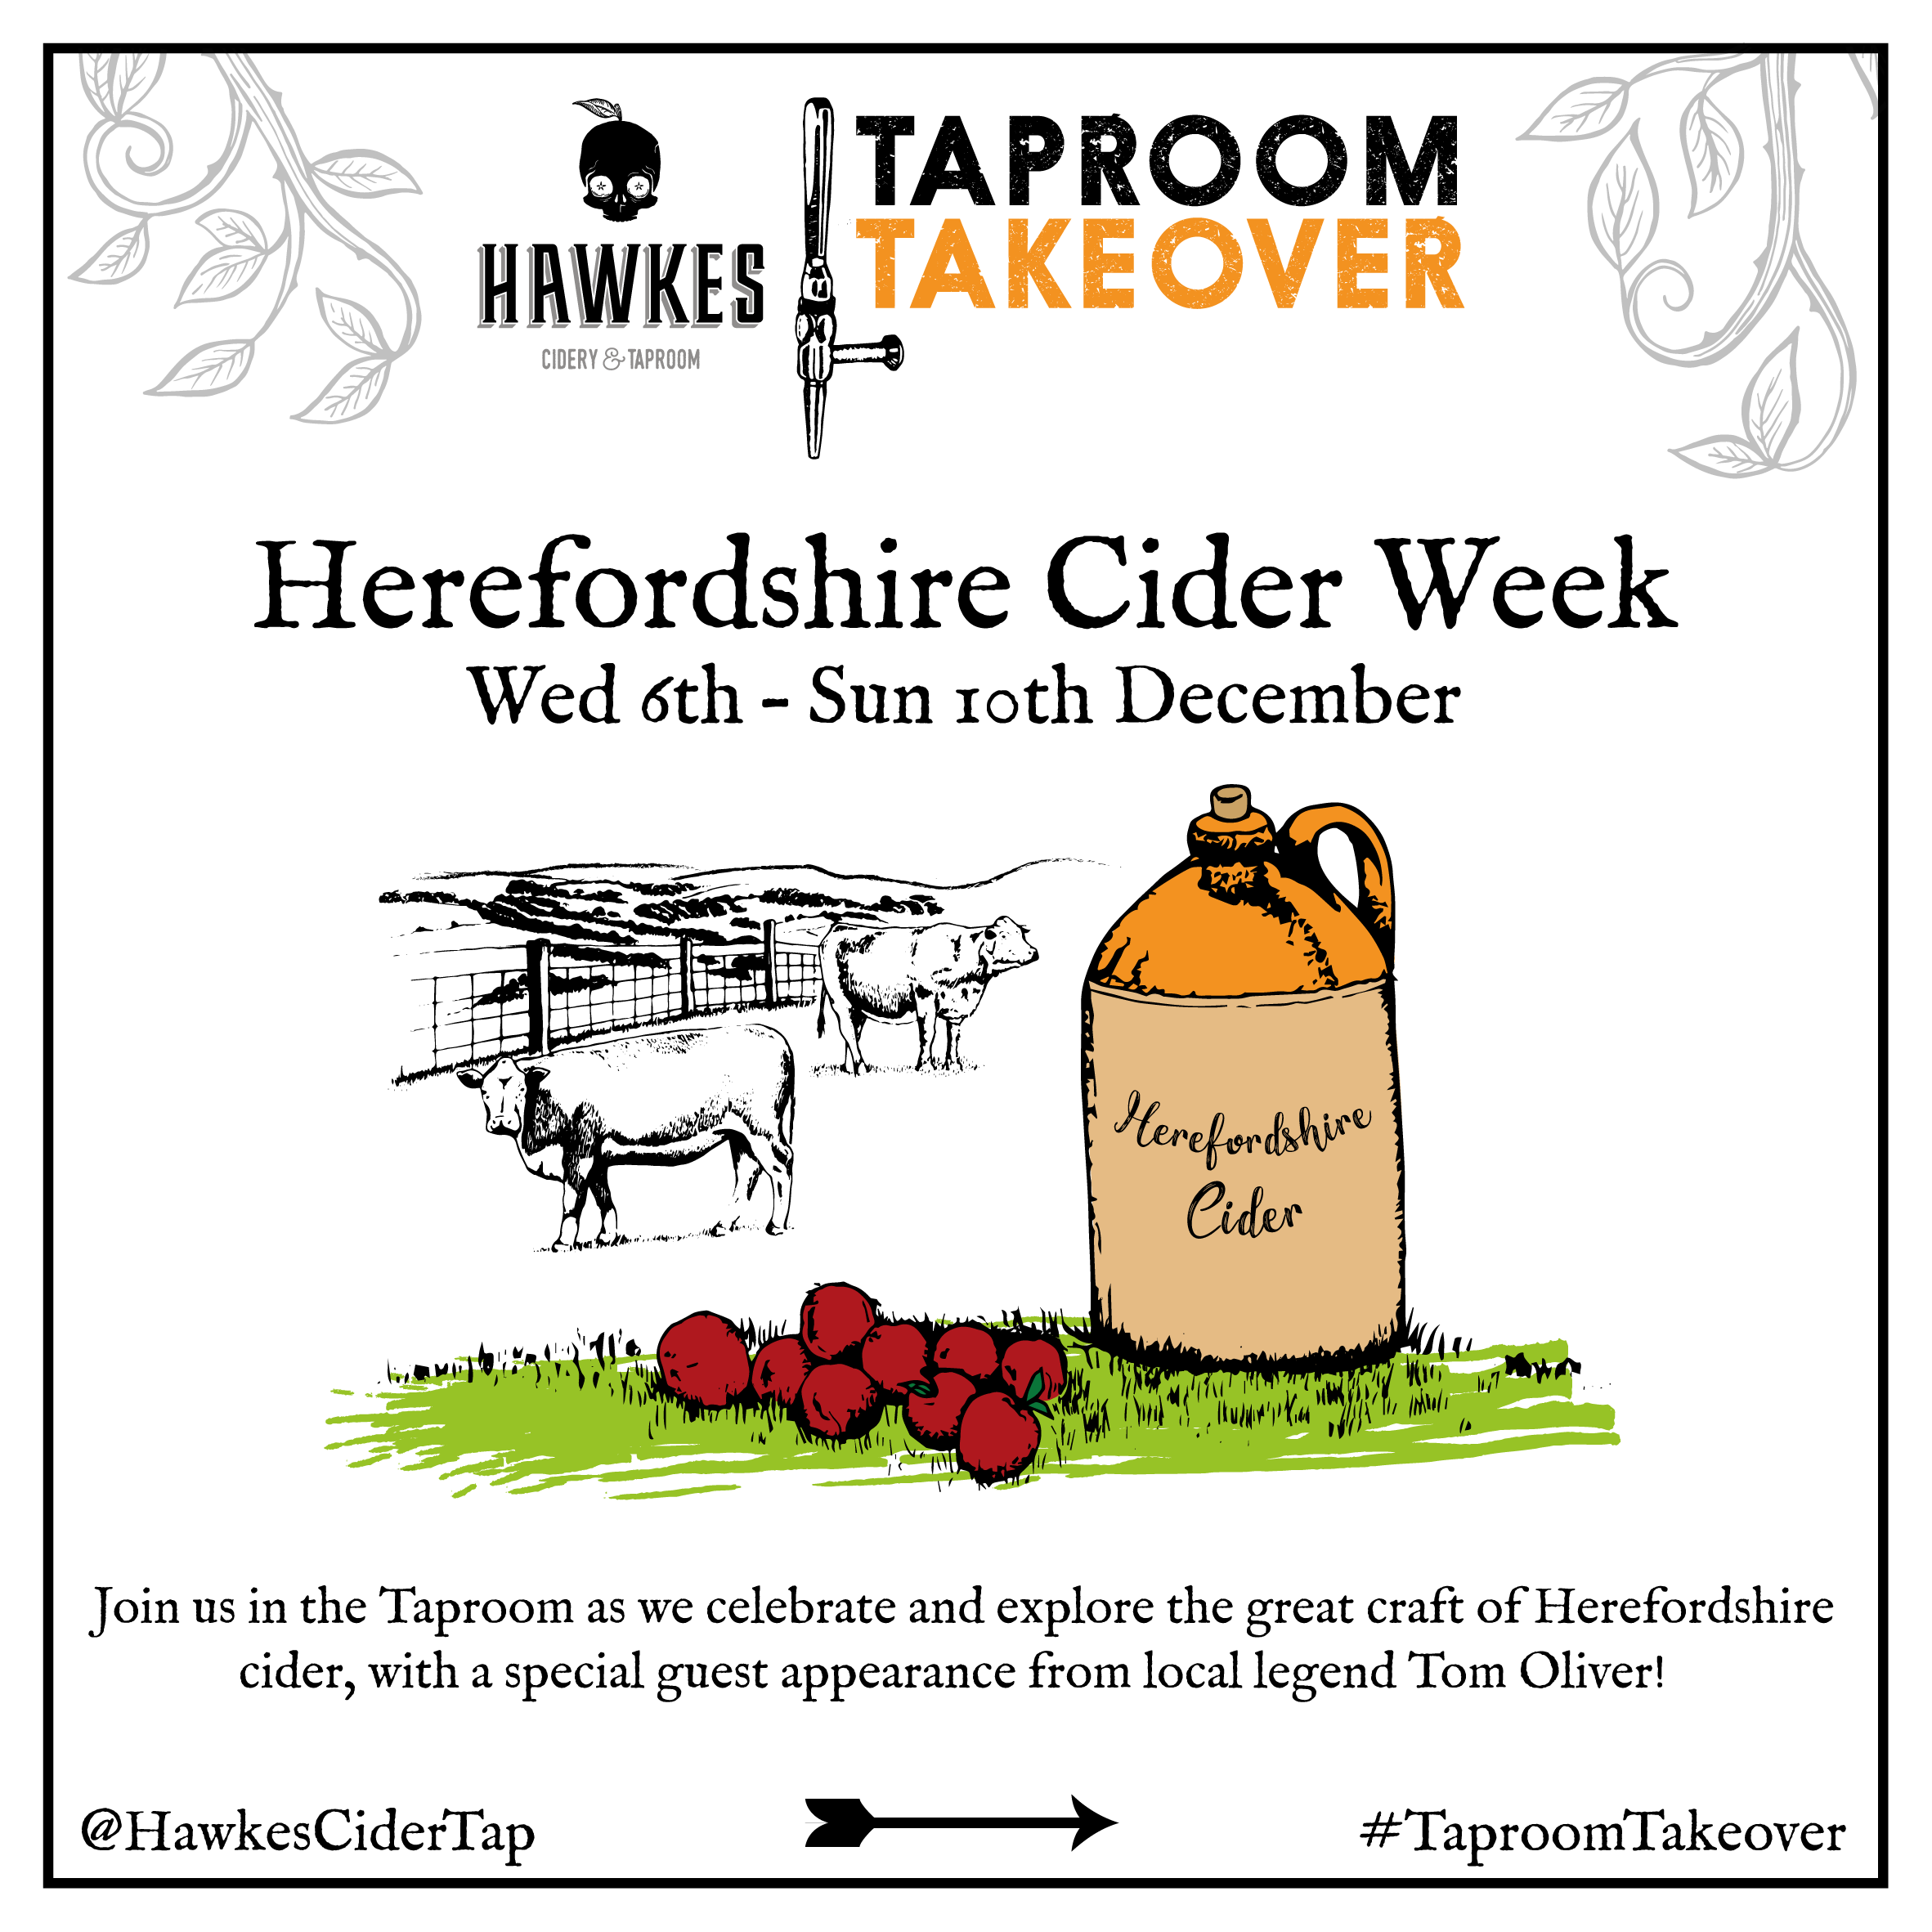 Herefordshire Cider Week ant the Hawkes Cidery & Taproom